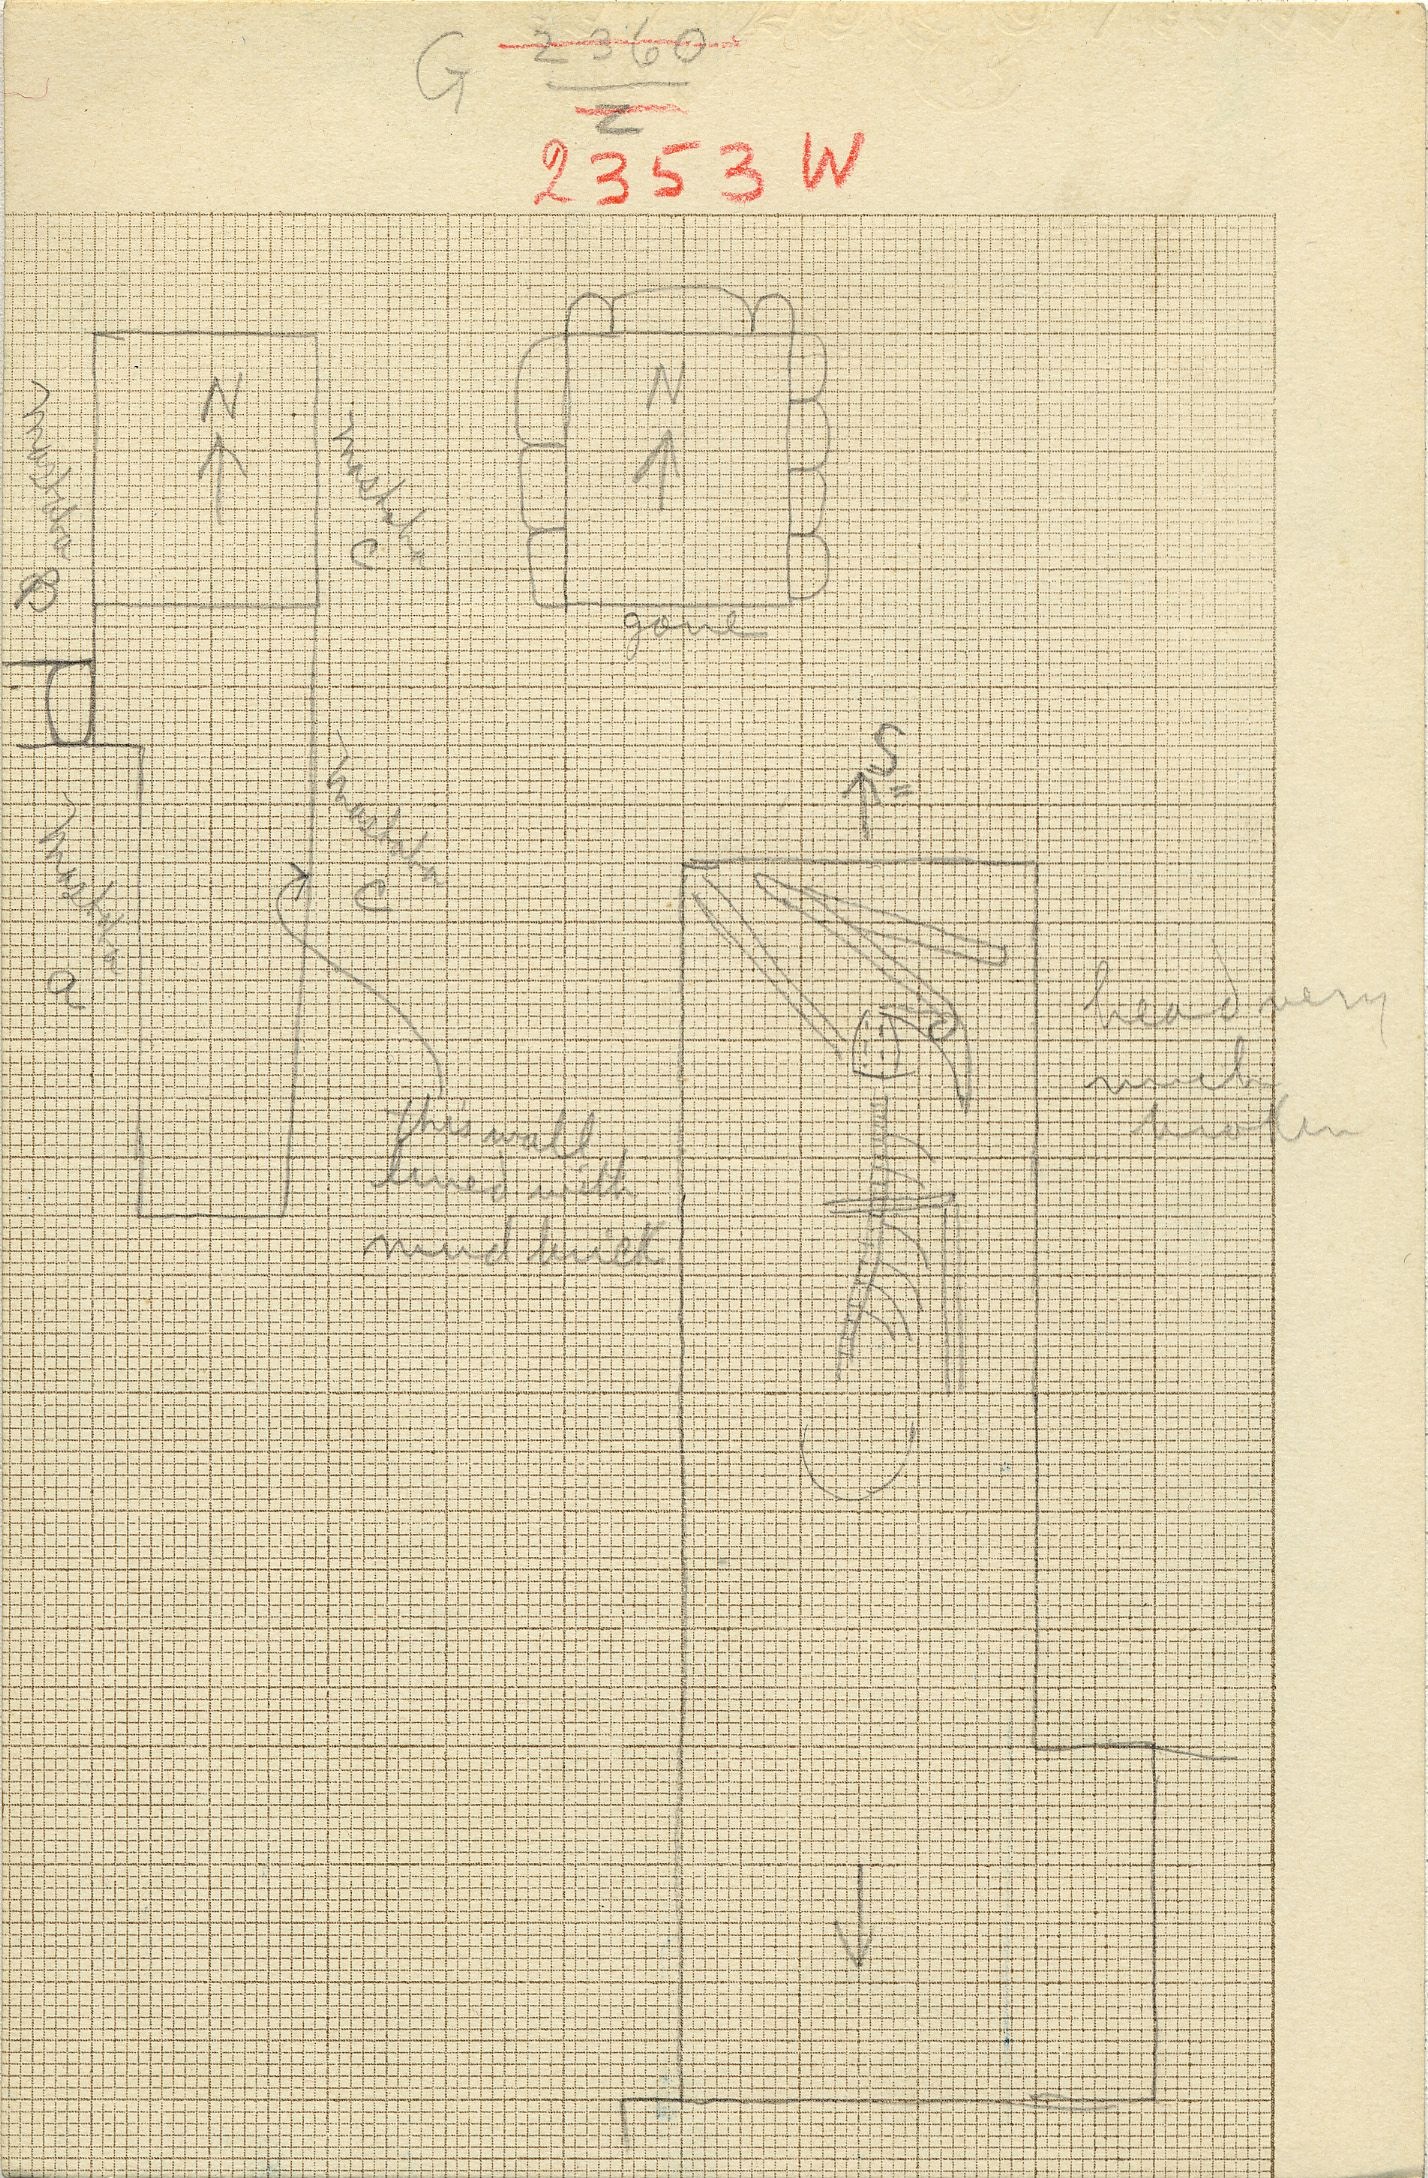 Maps and plans: G 2353, Shaft W